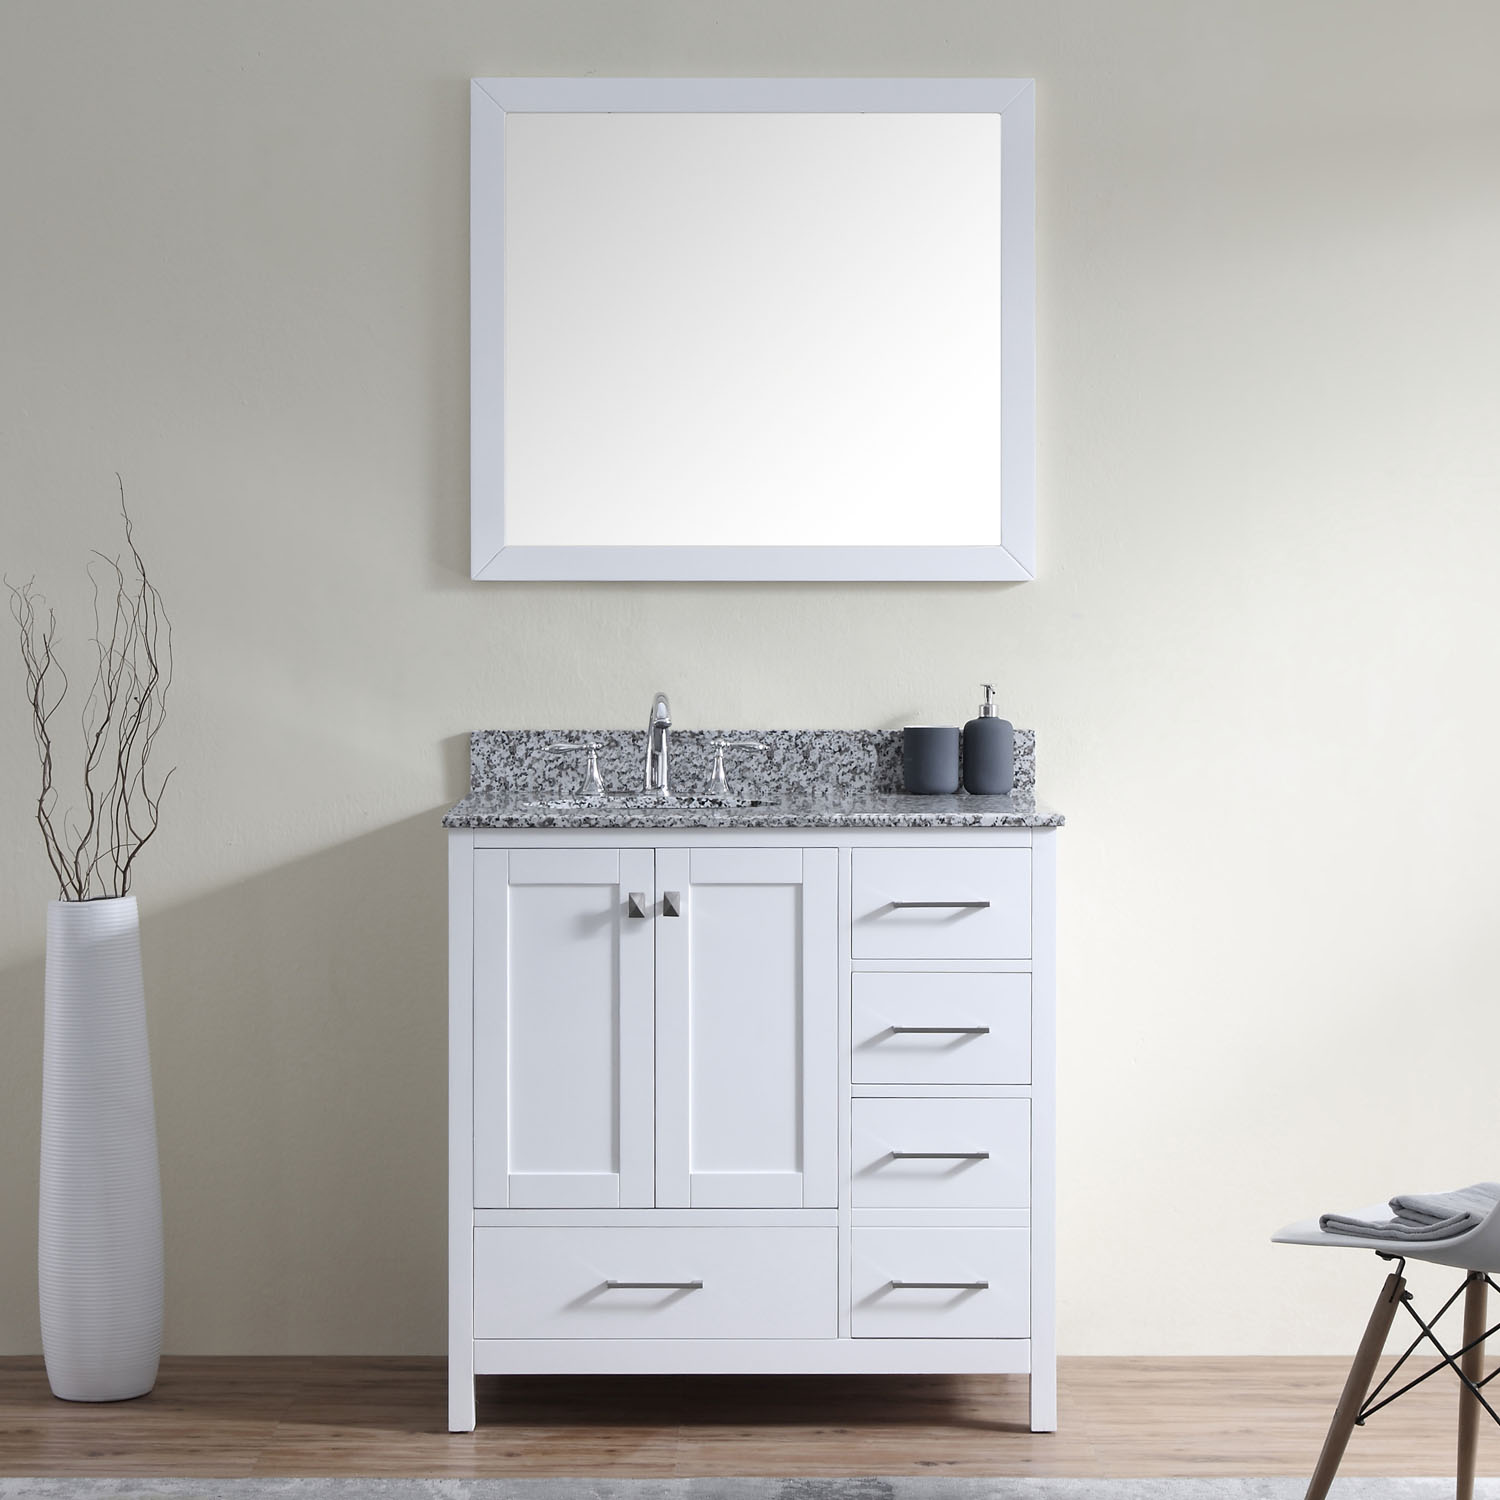 "Caroline Madison 36"" Vanity in White by Virtu USA - gs-28036r-awro-wh"